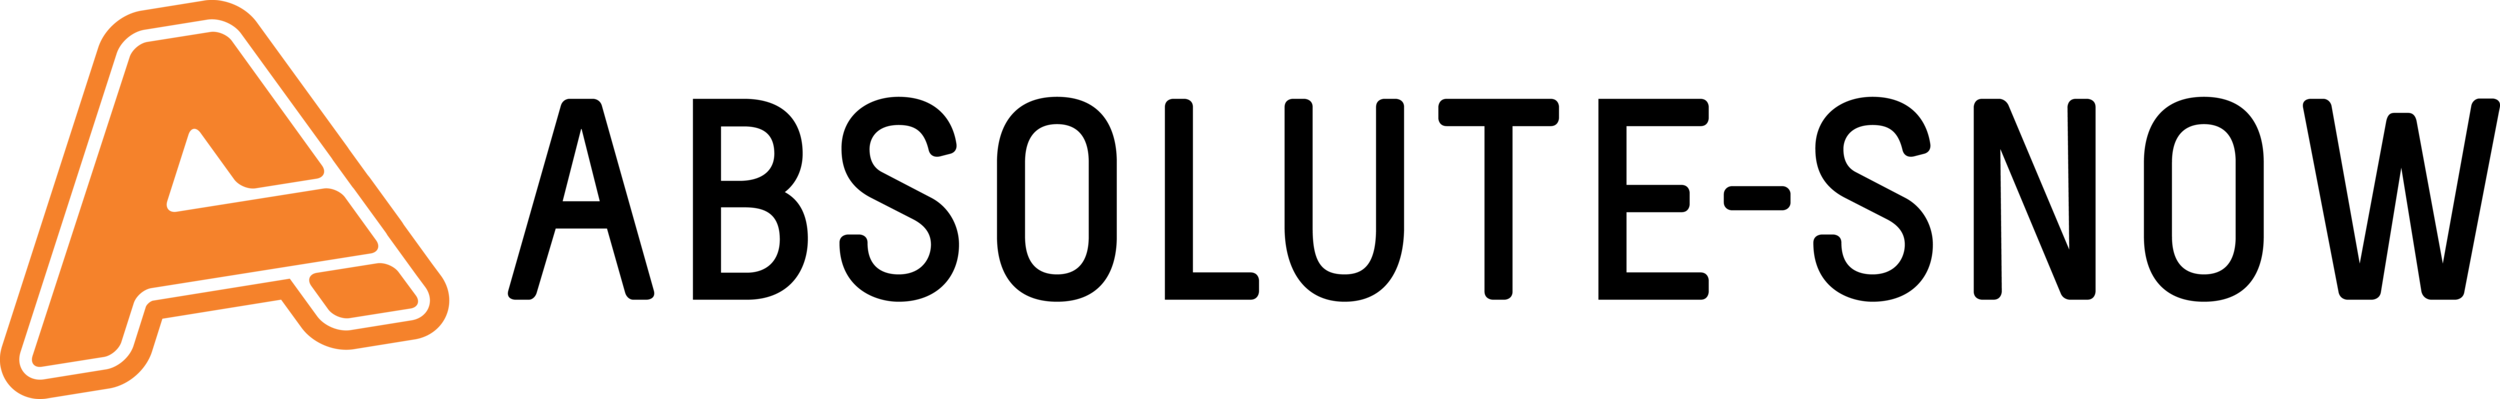 Absolute-Snow_Logo_Black.png